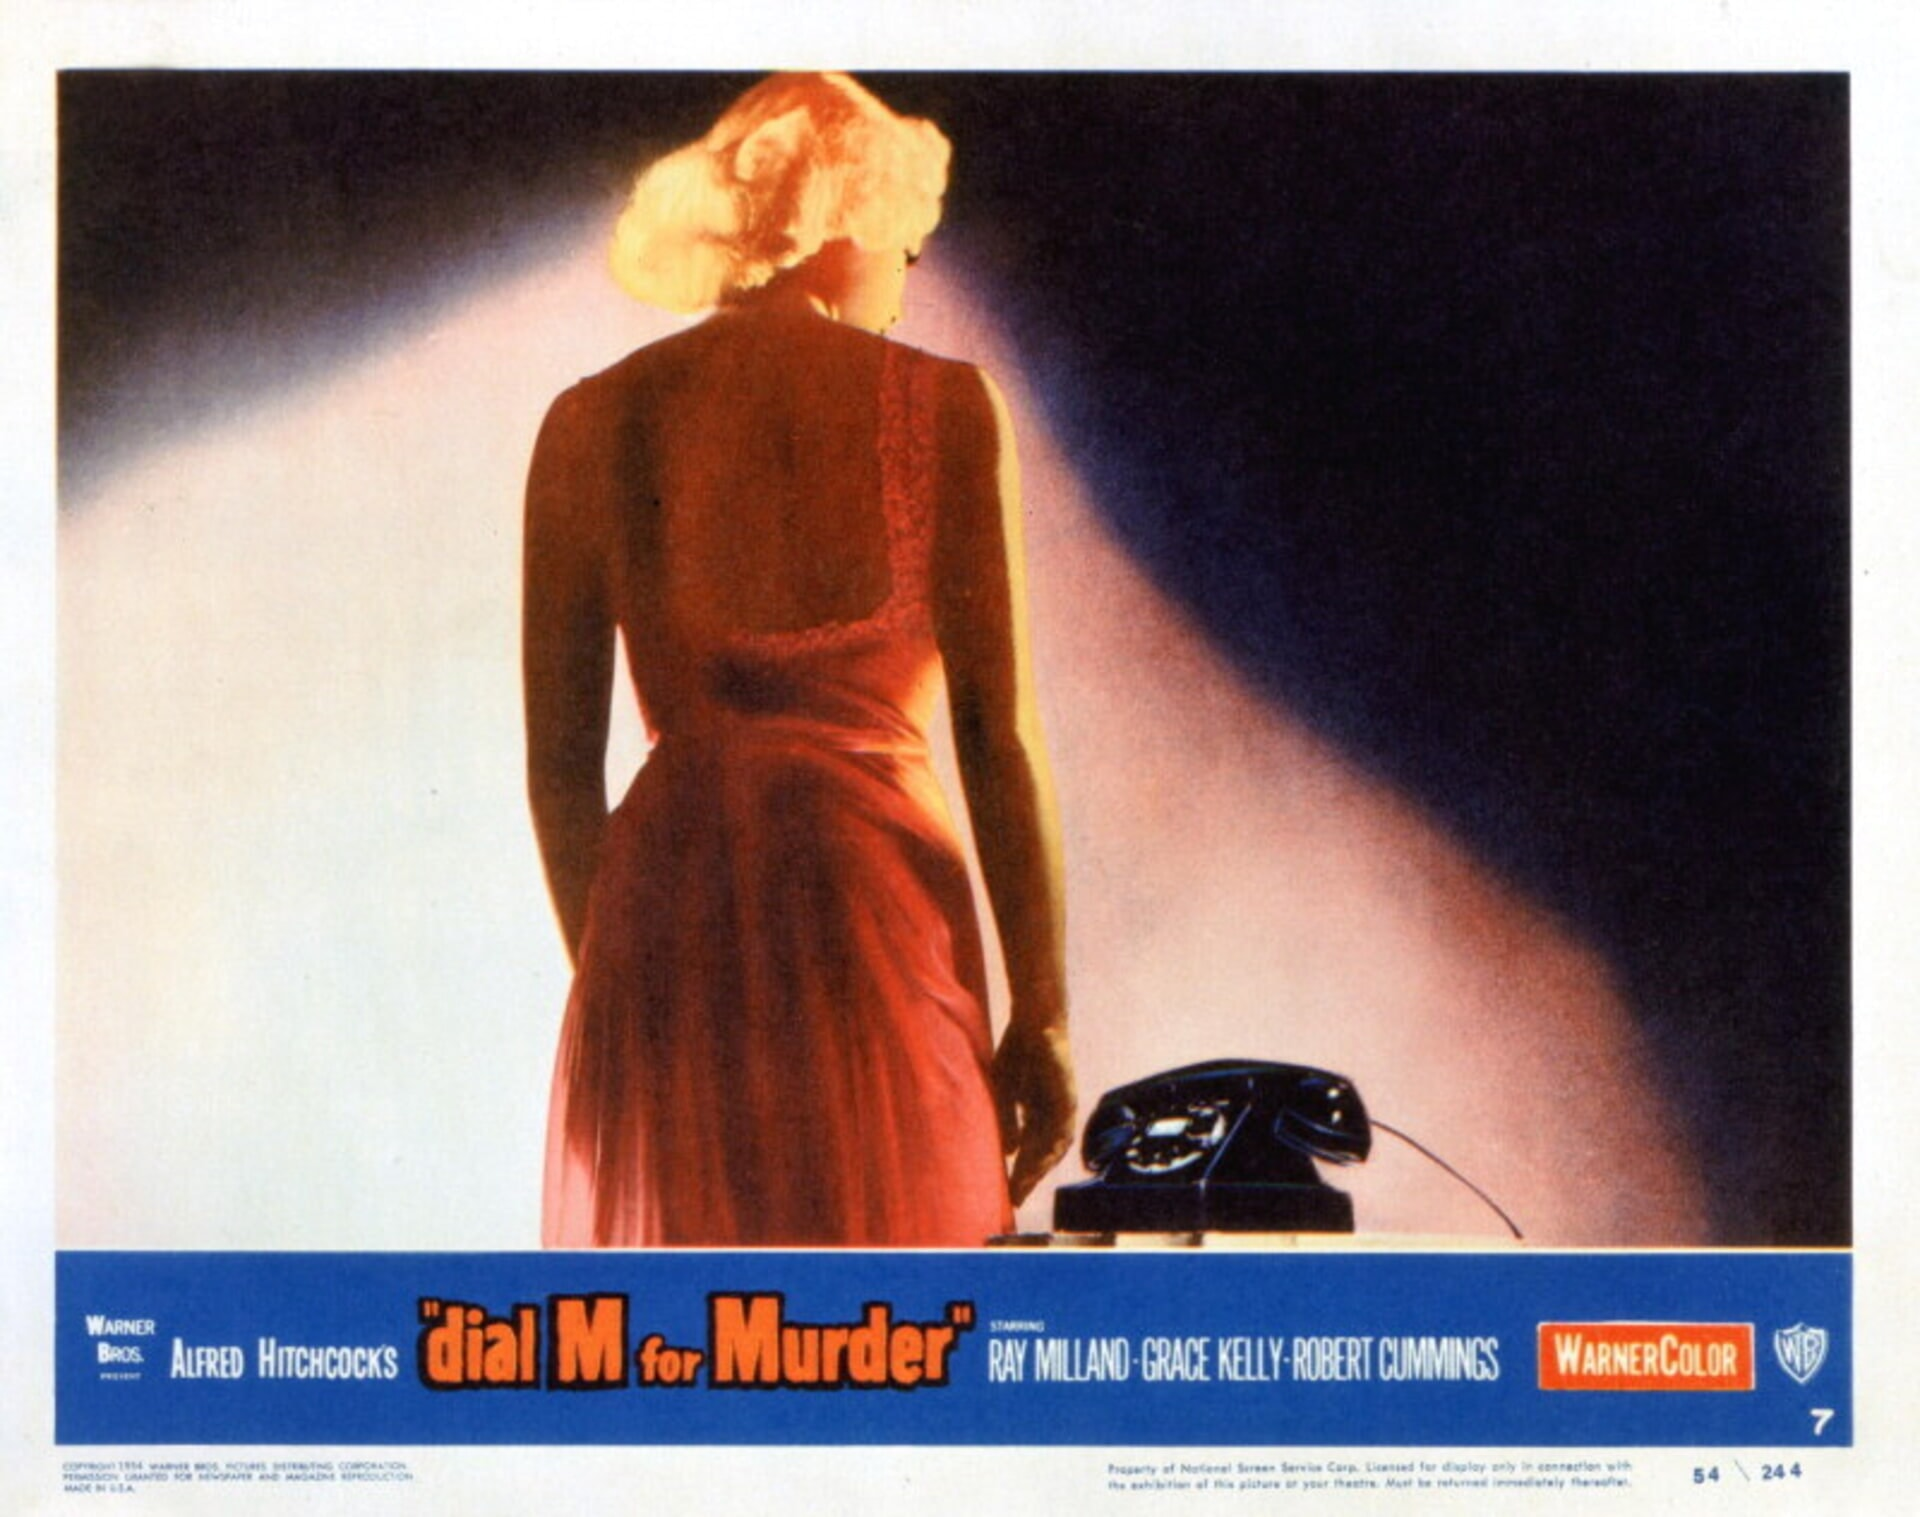 Dial M for Murder - Poster 7